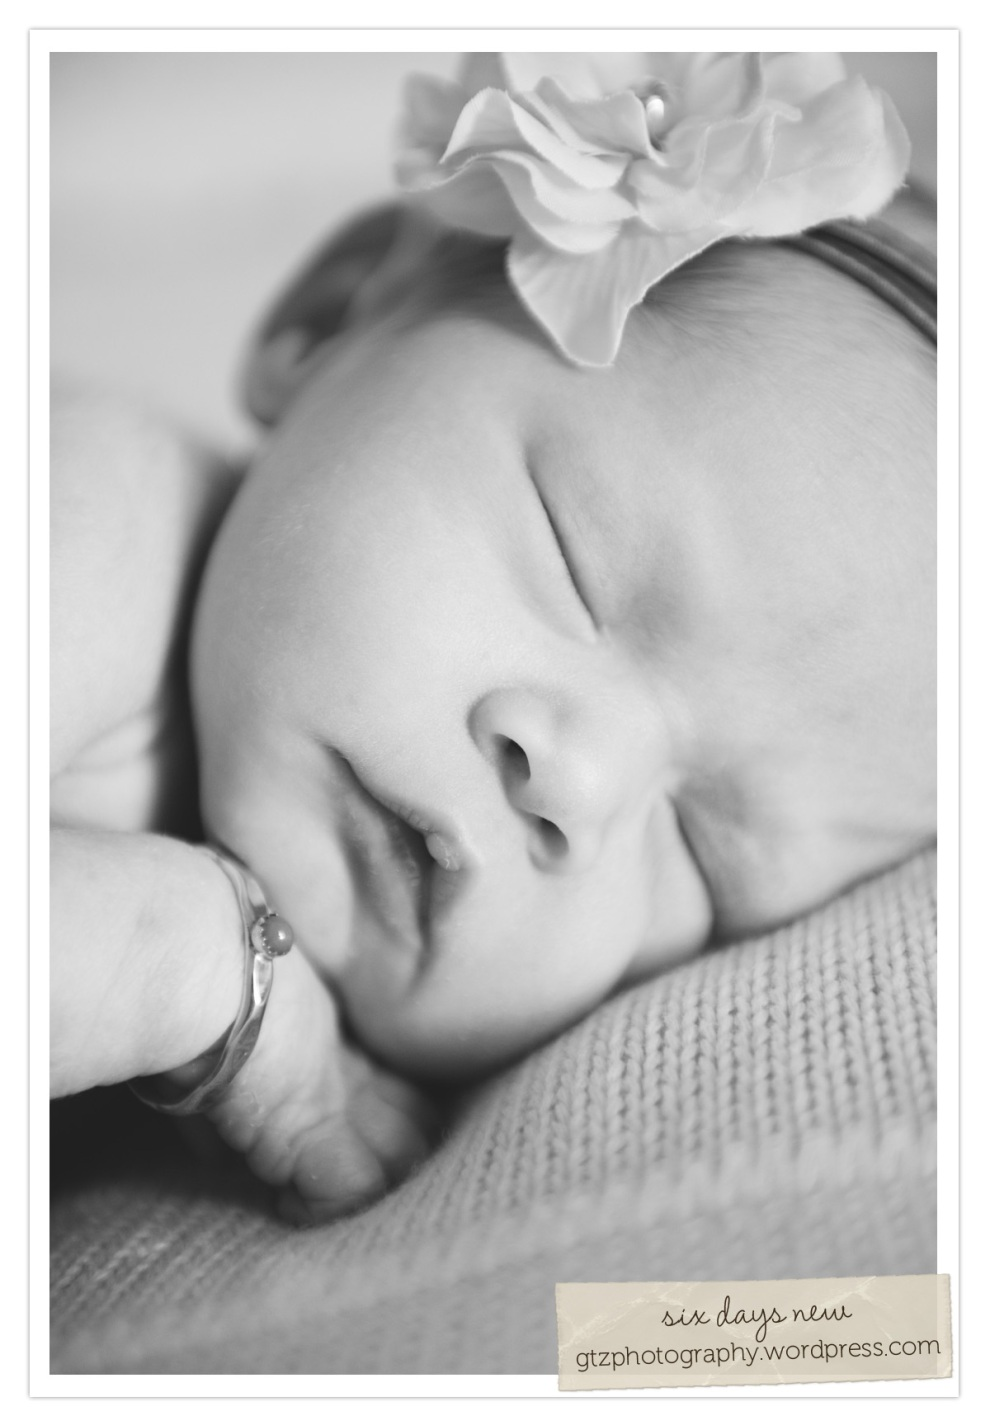 six day old newborn baby girl, closeup of sleeping face, with flower headband and bracelet